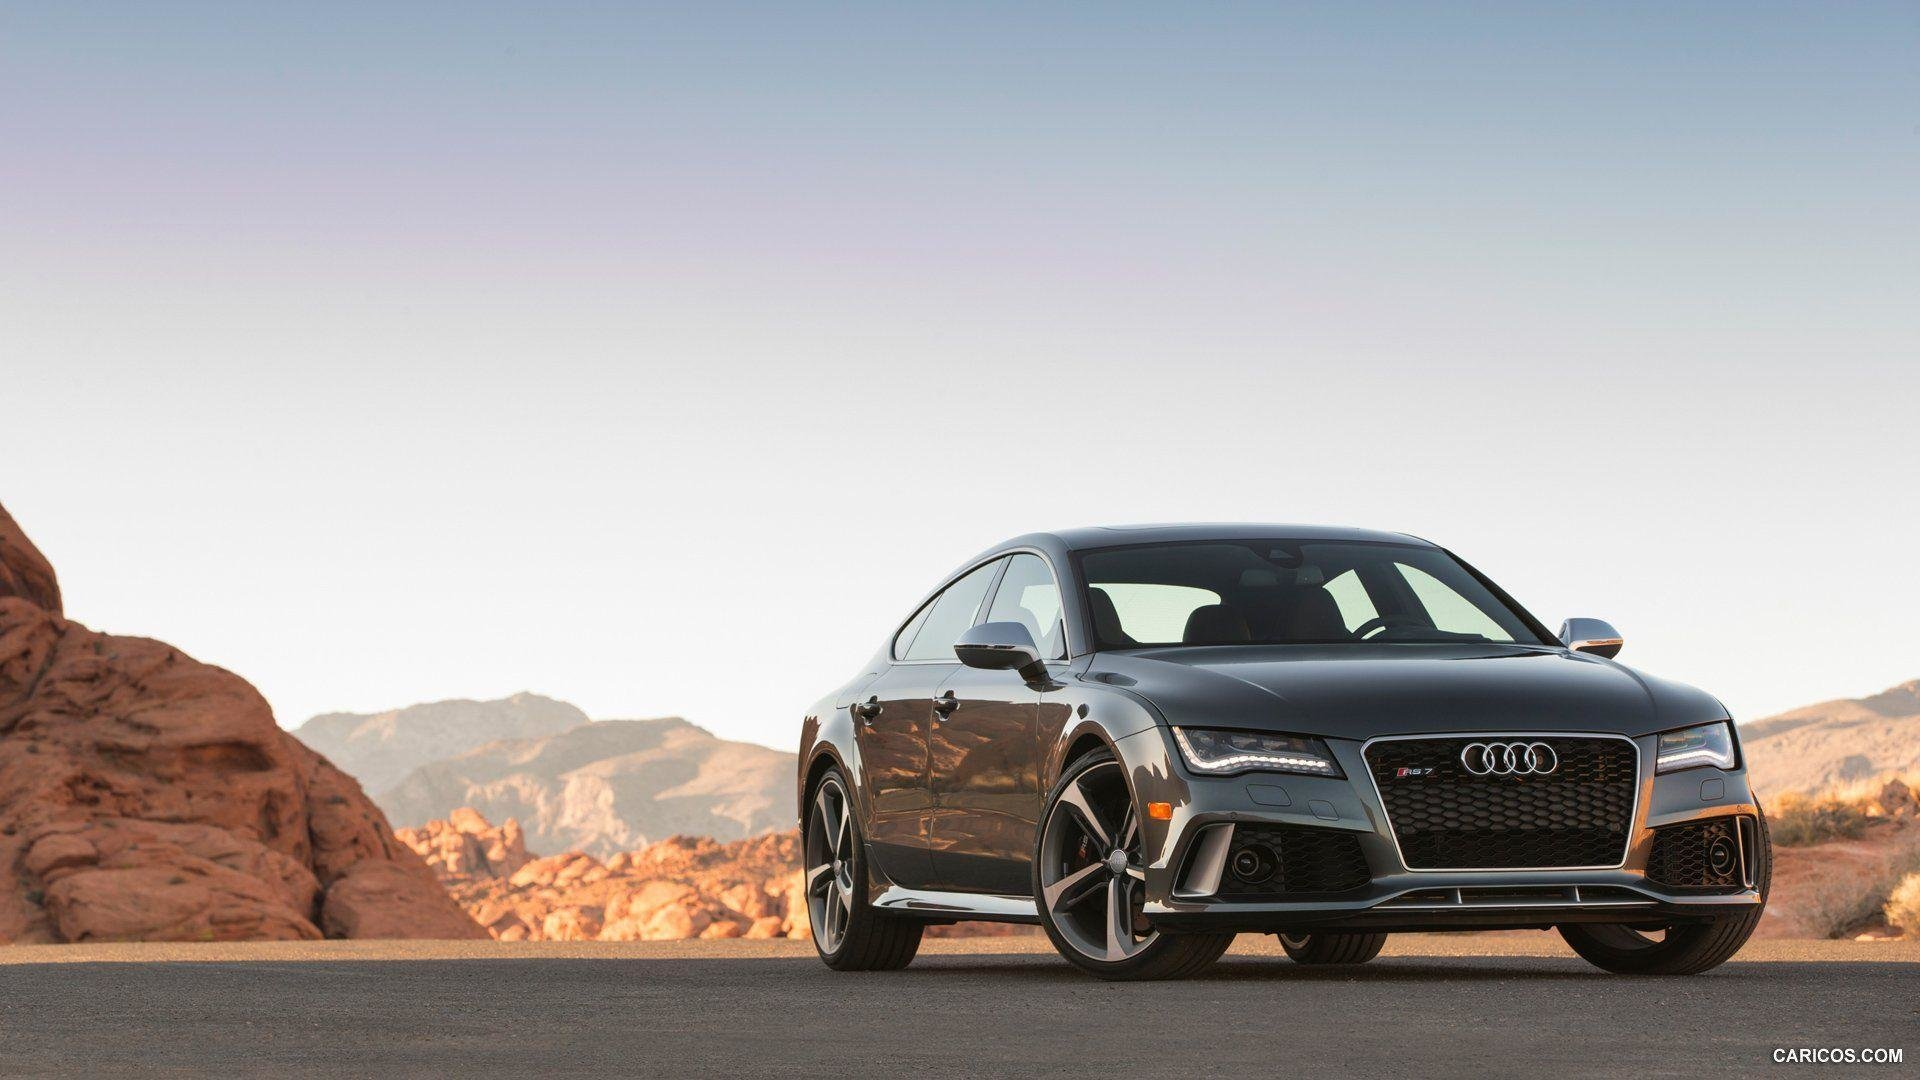 Latest Audi Rs7 Wallpapers Wallpaper Cave Free Download